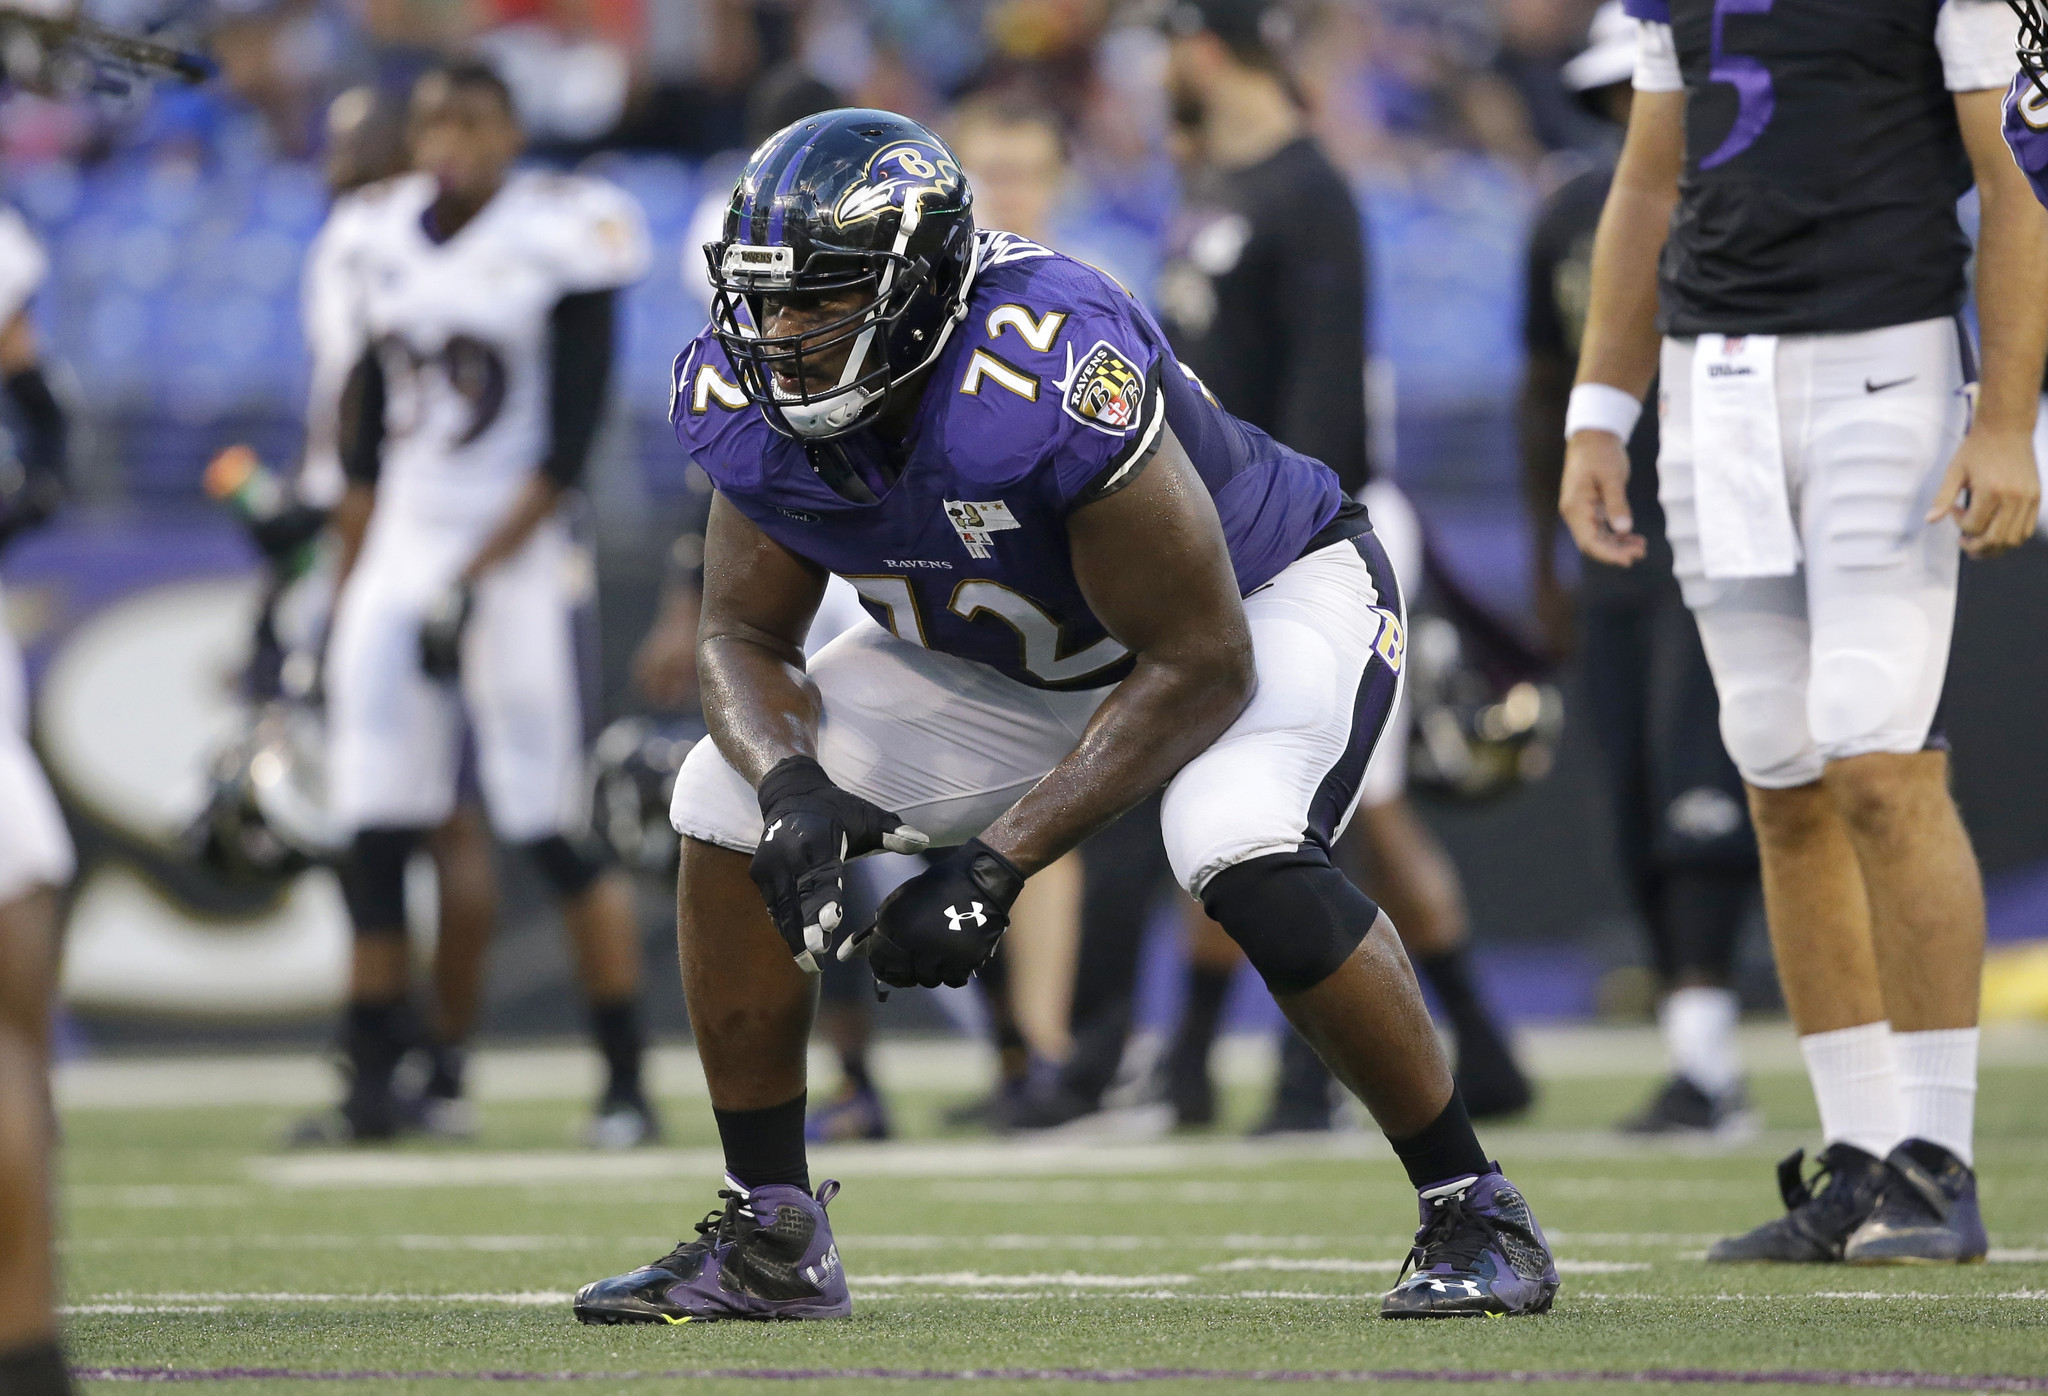 Kelechi Osemele to leave Ravens sign with Raiders when free agent